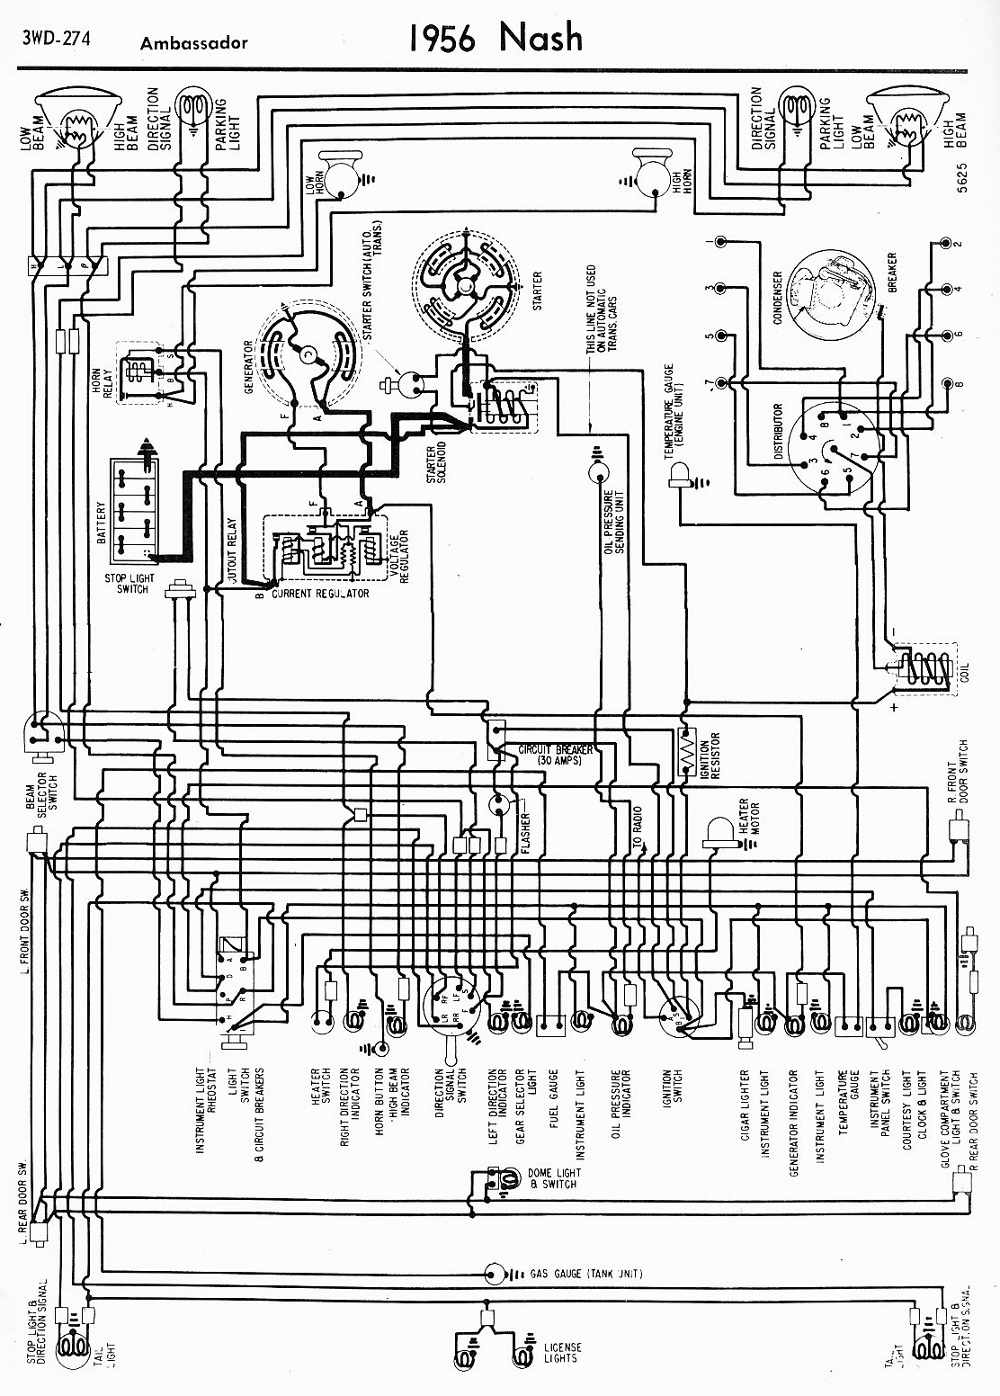 Nash Car Manuals Wiring Diagrams Pdf Fault Codes Need To Downlooad A Diagram For 1950 Ford Download